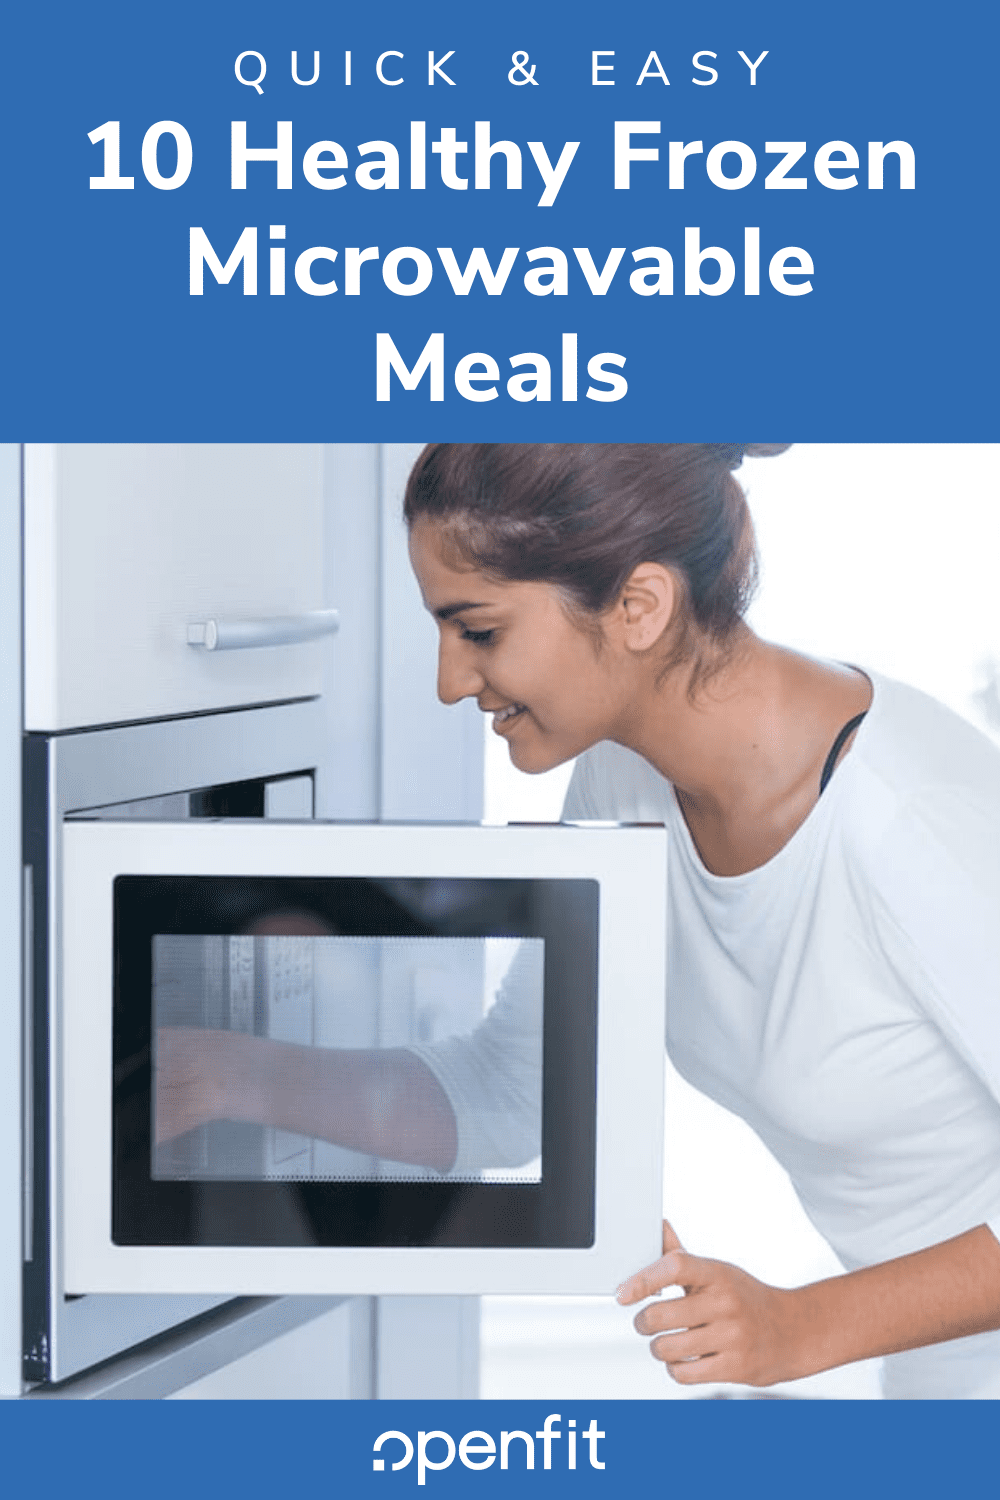 microwave meals - pin image